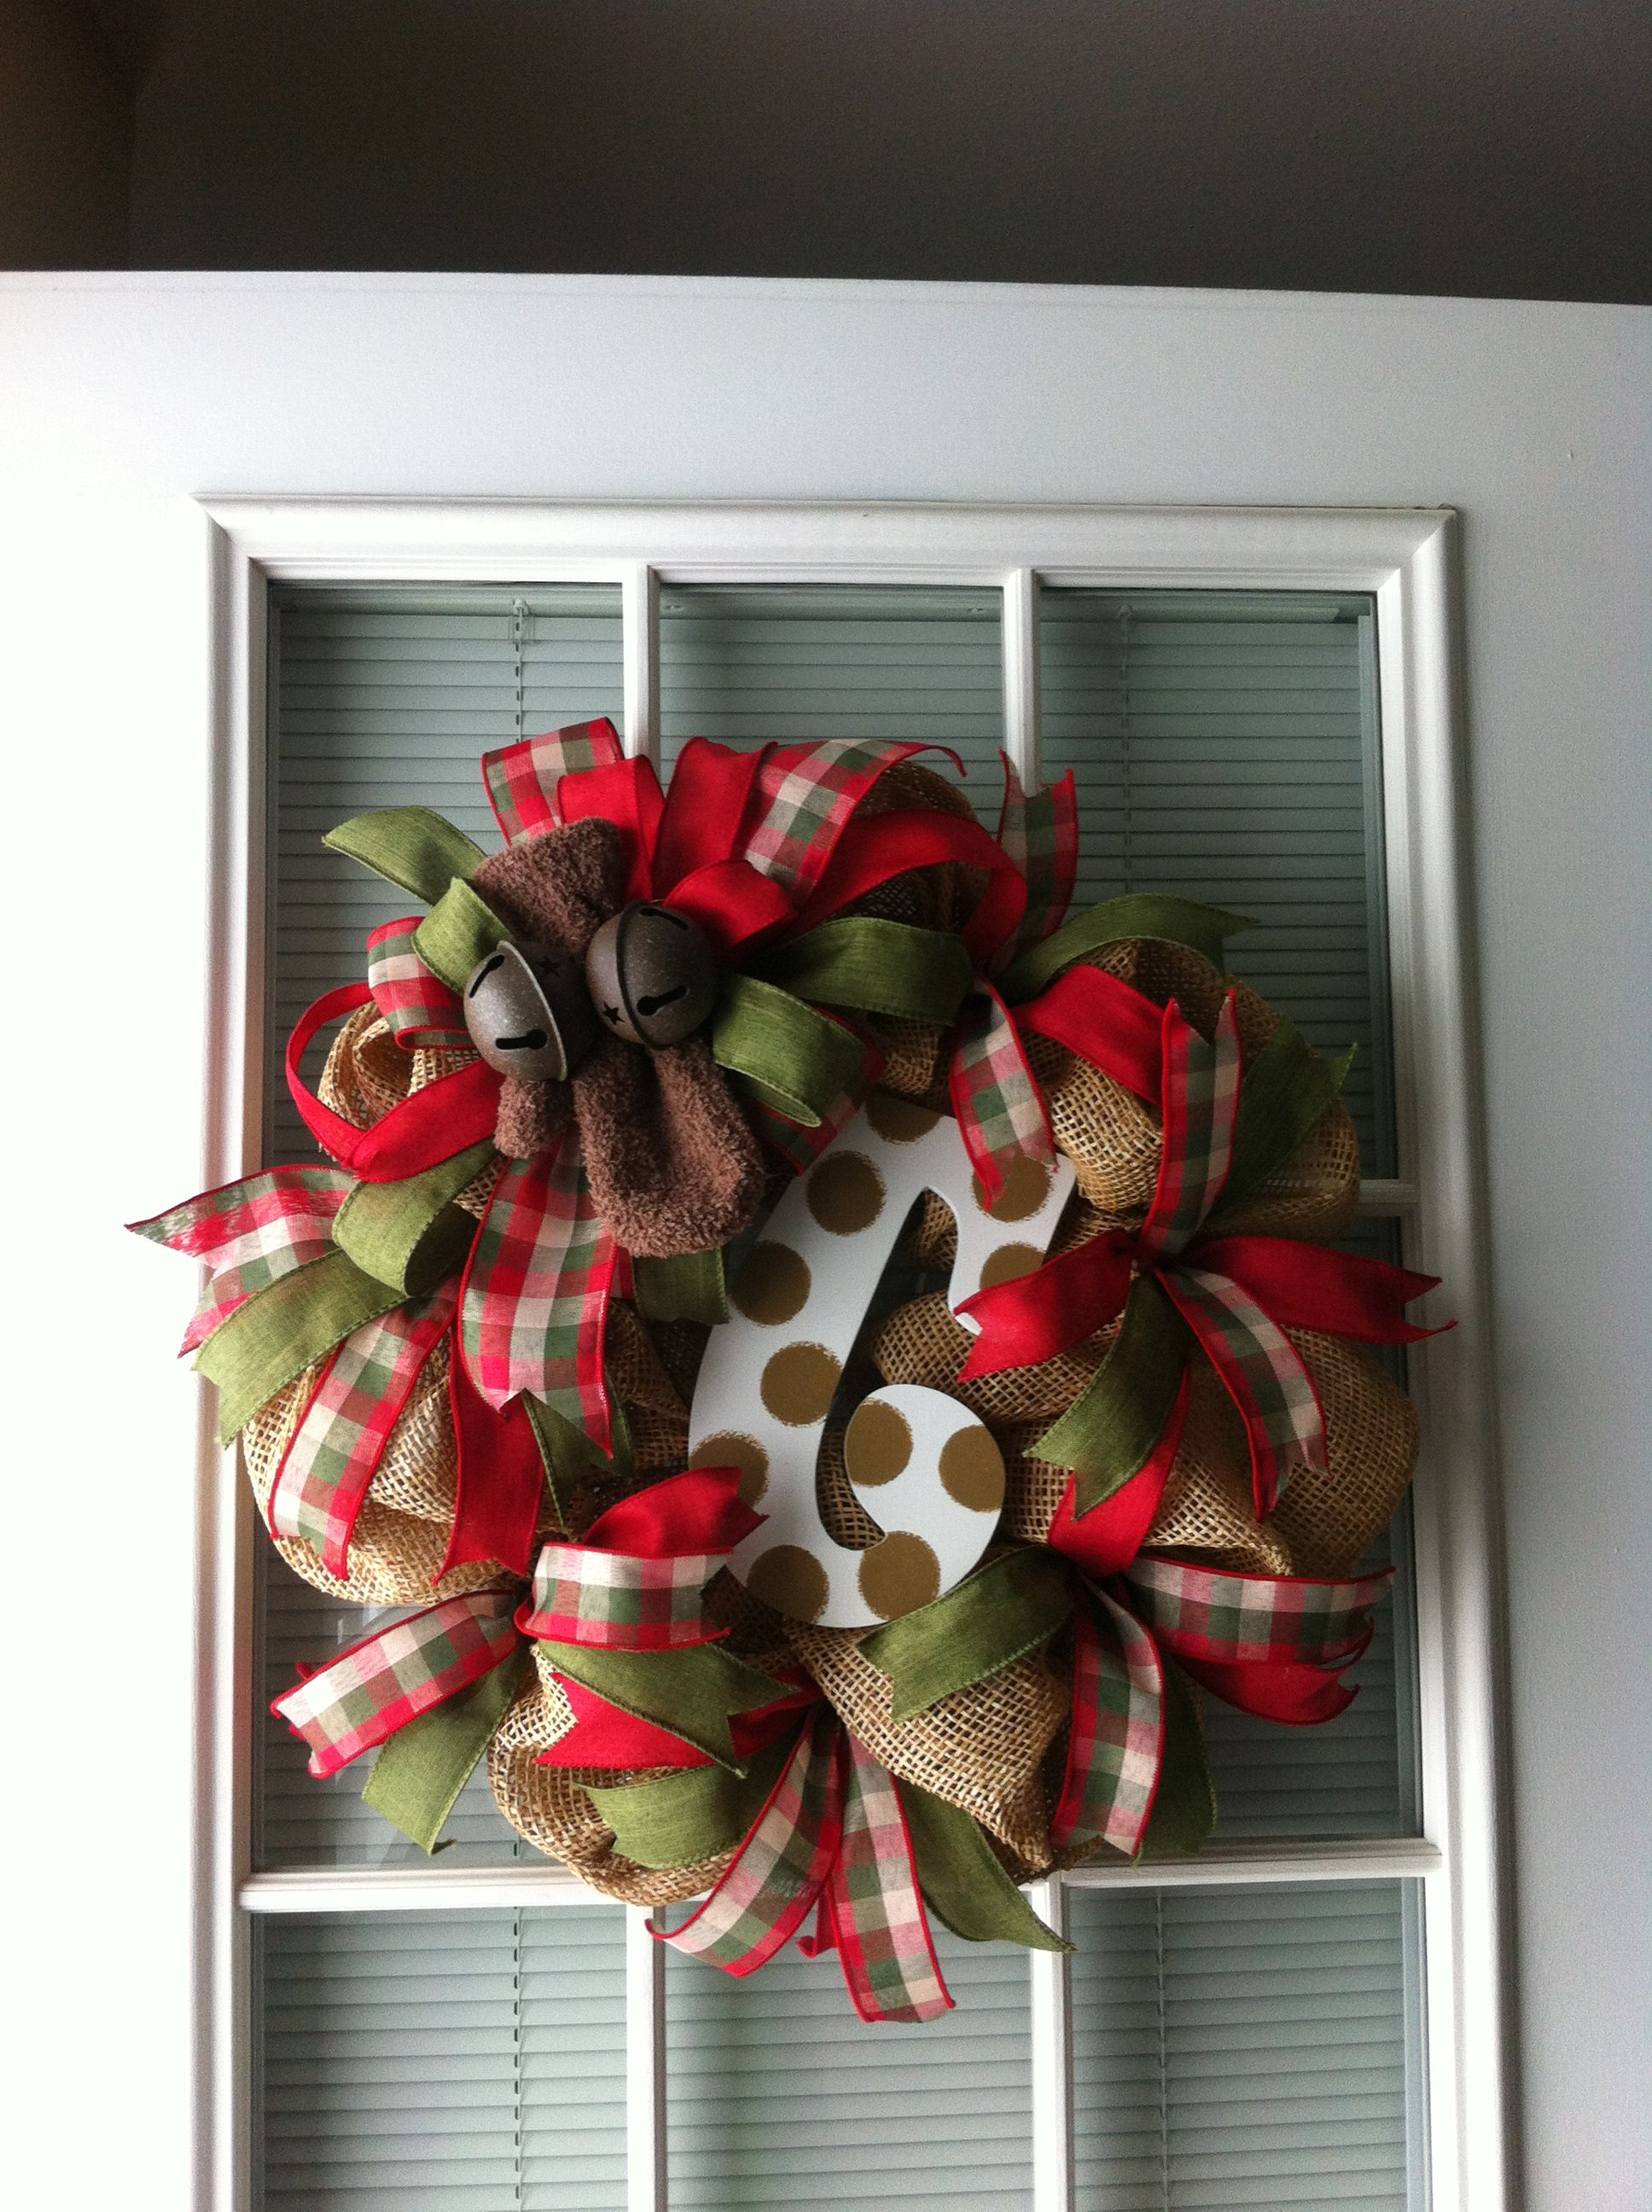 Large Christmas Bells Decorations Holiday Wreath With Mesh Burlap Solid And Plaid Ribbons Mitten